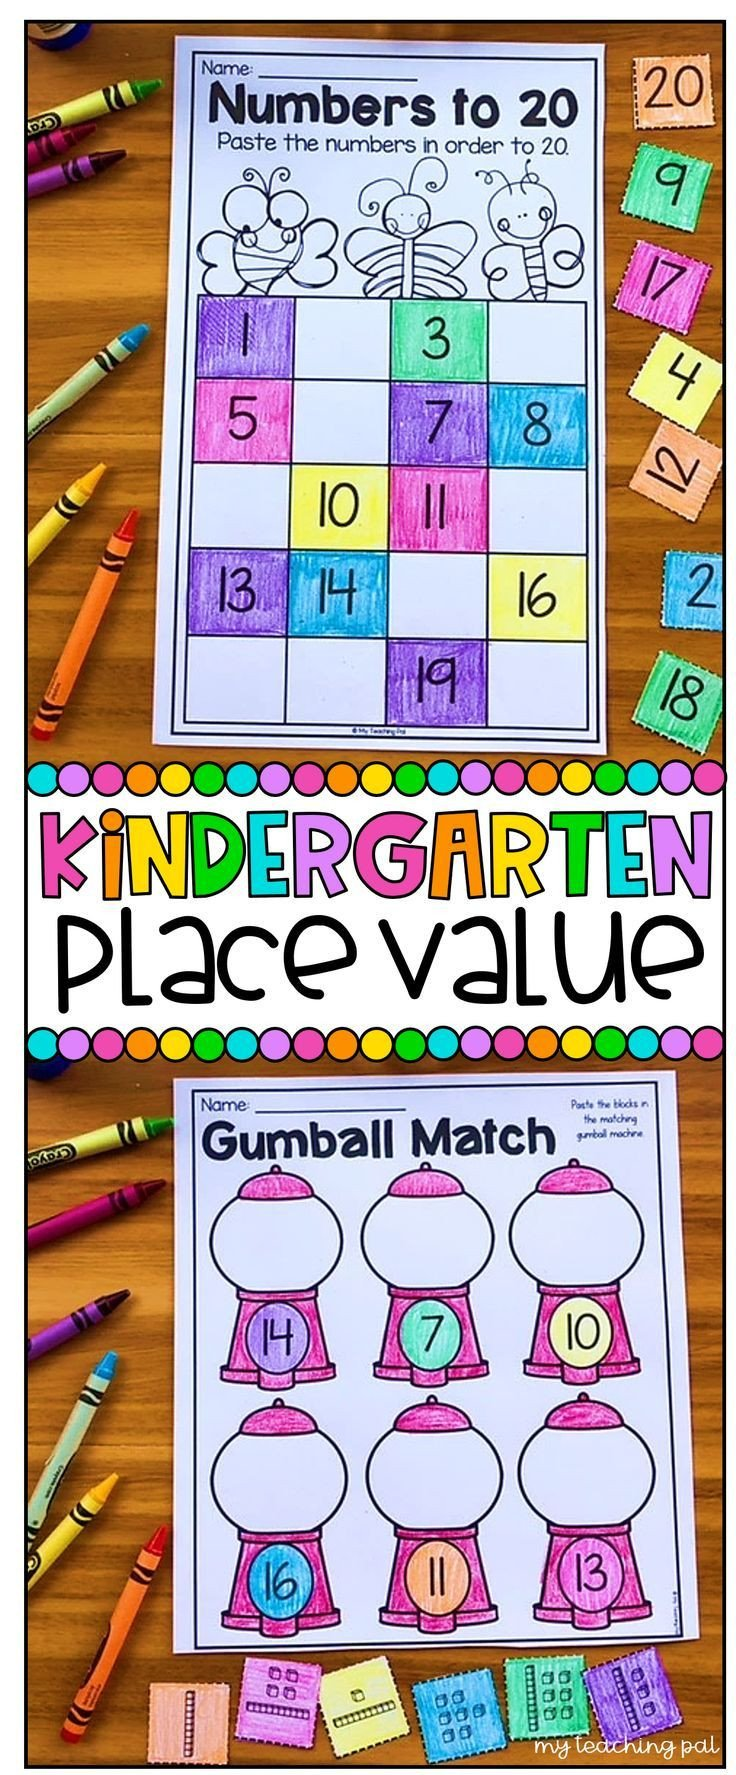 Counting by Tens Worksheet Kindergarten Kindergarten Place Value Worksheets